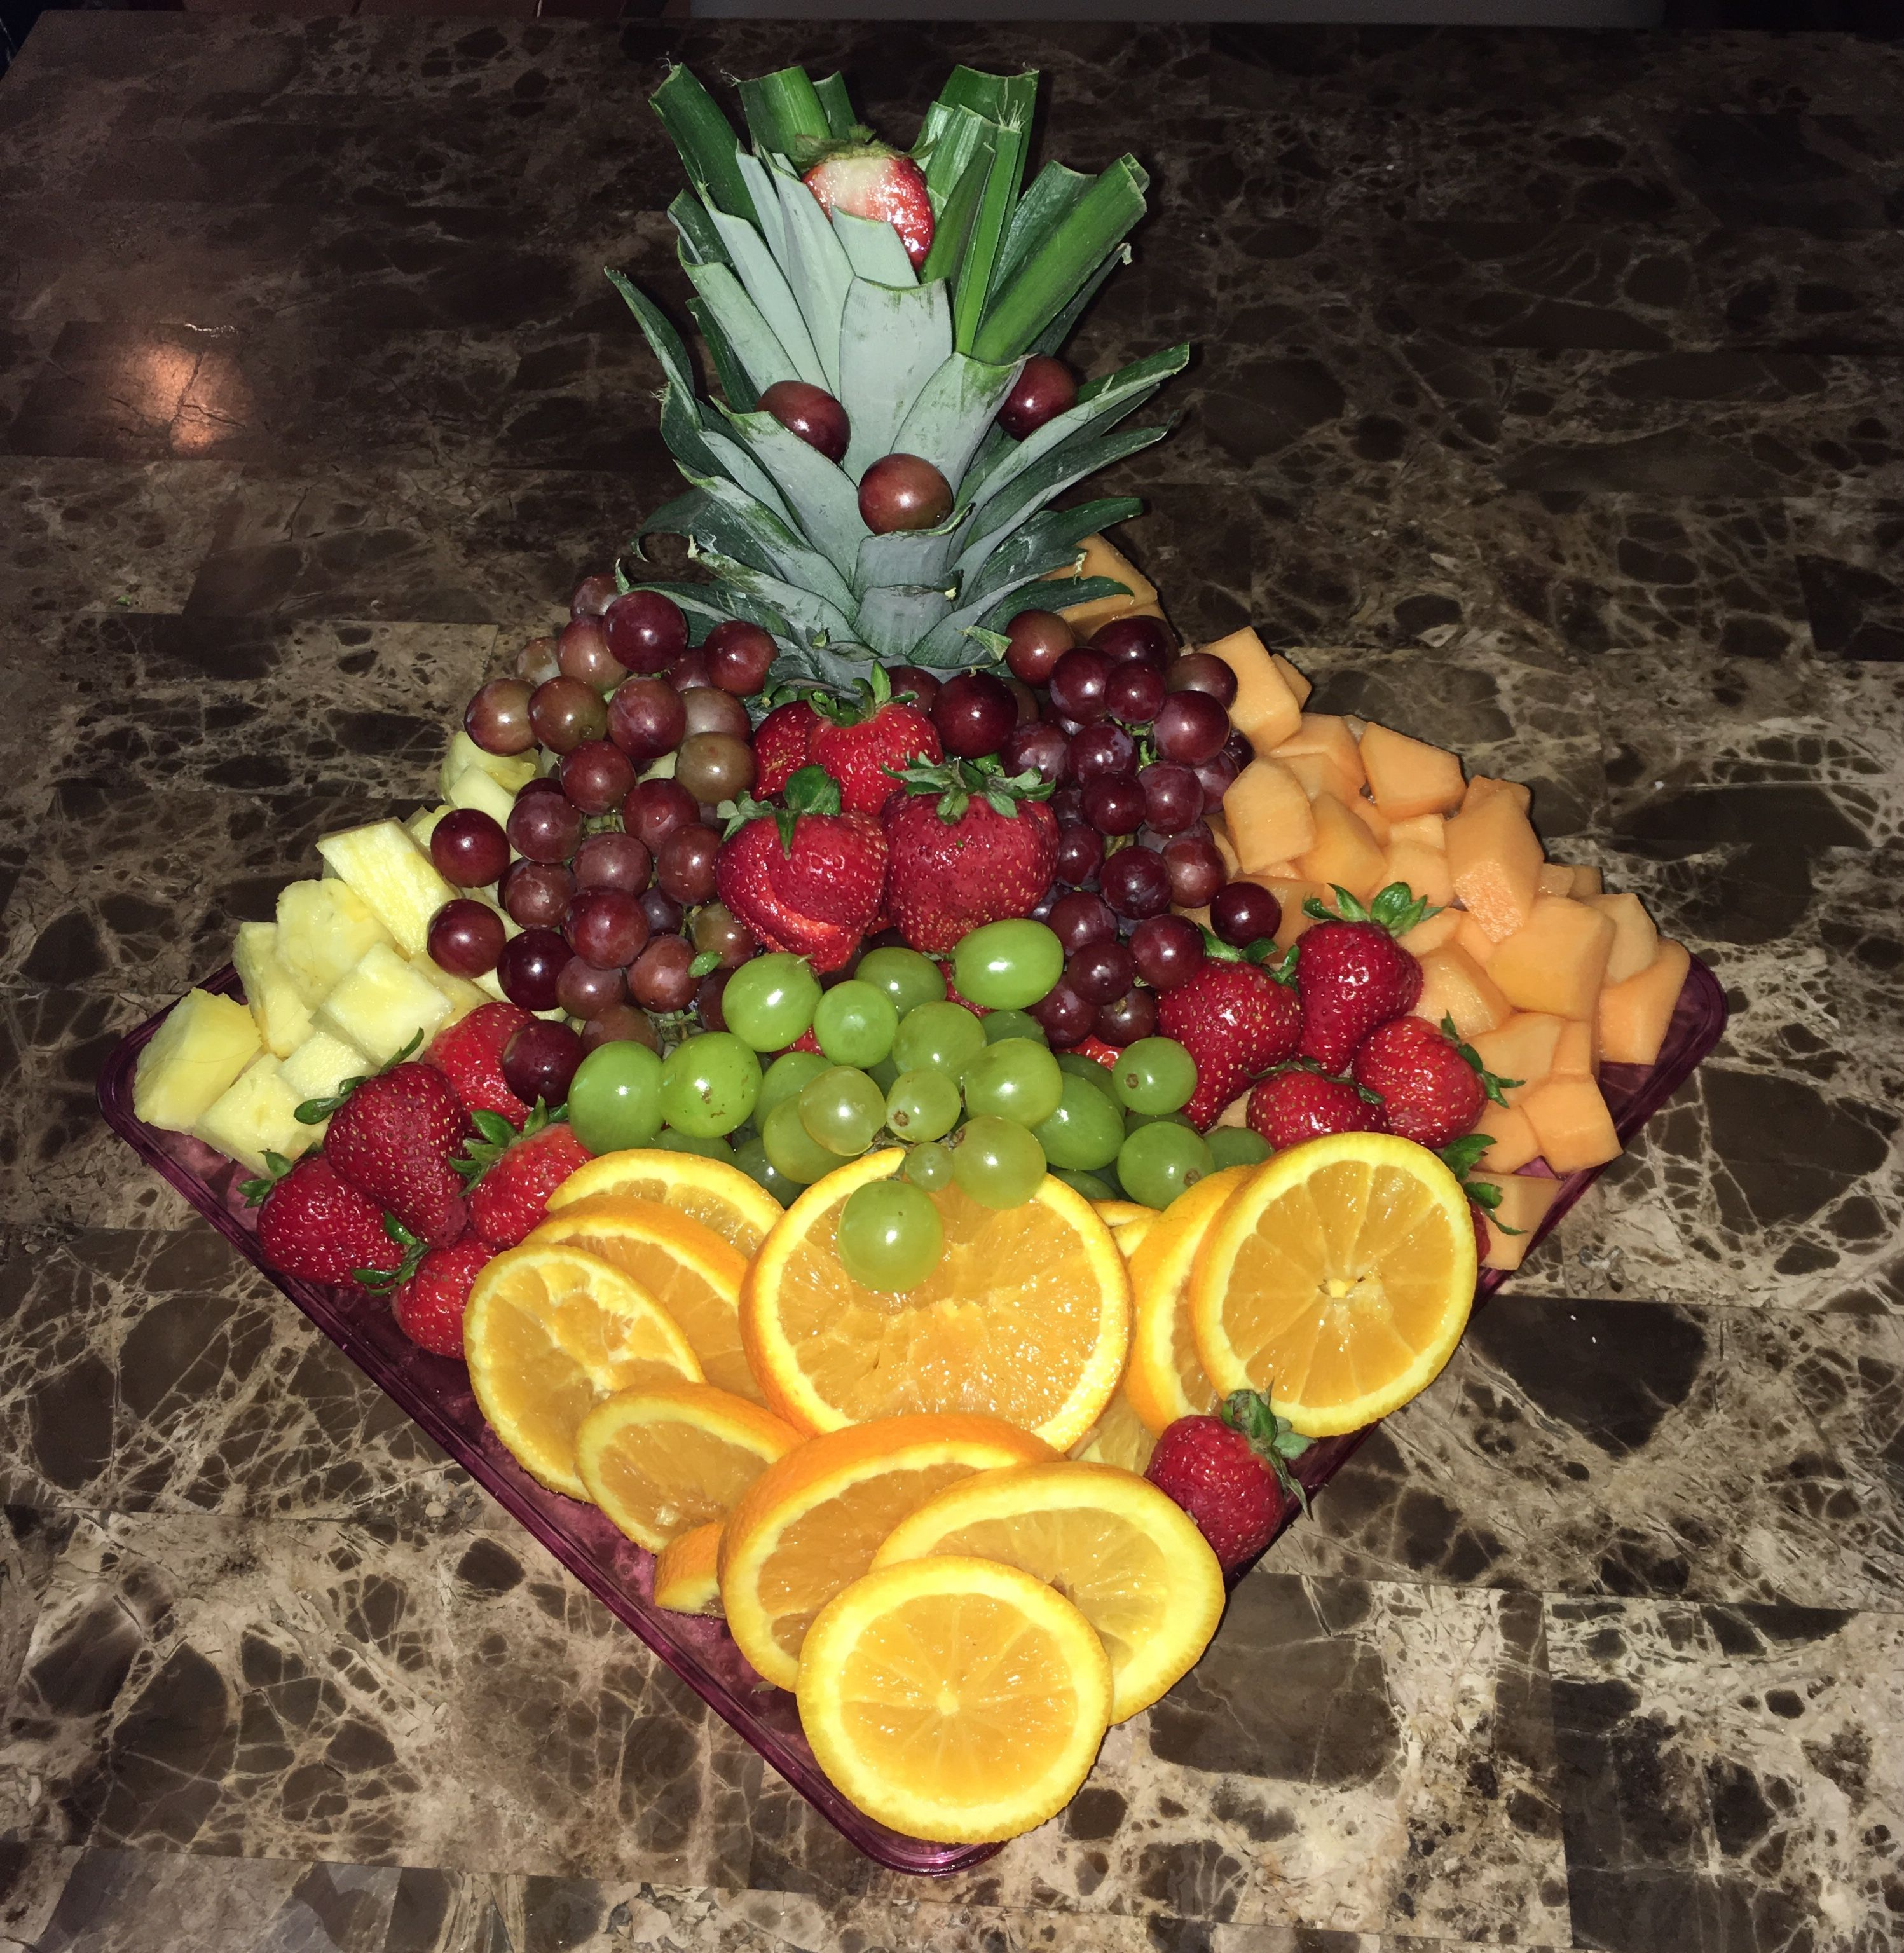 Assorted Fresh Fruit Platter, Arranged By Me (Minniepearl94)